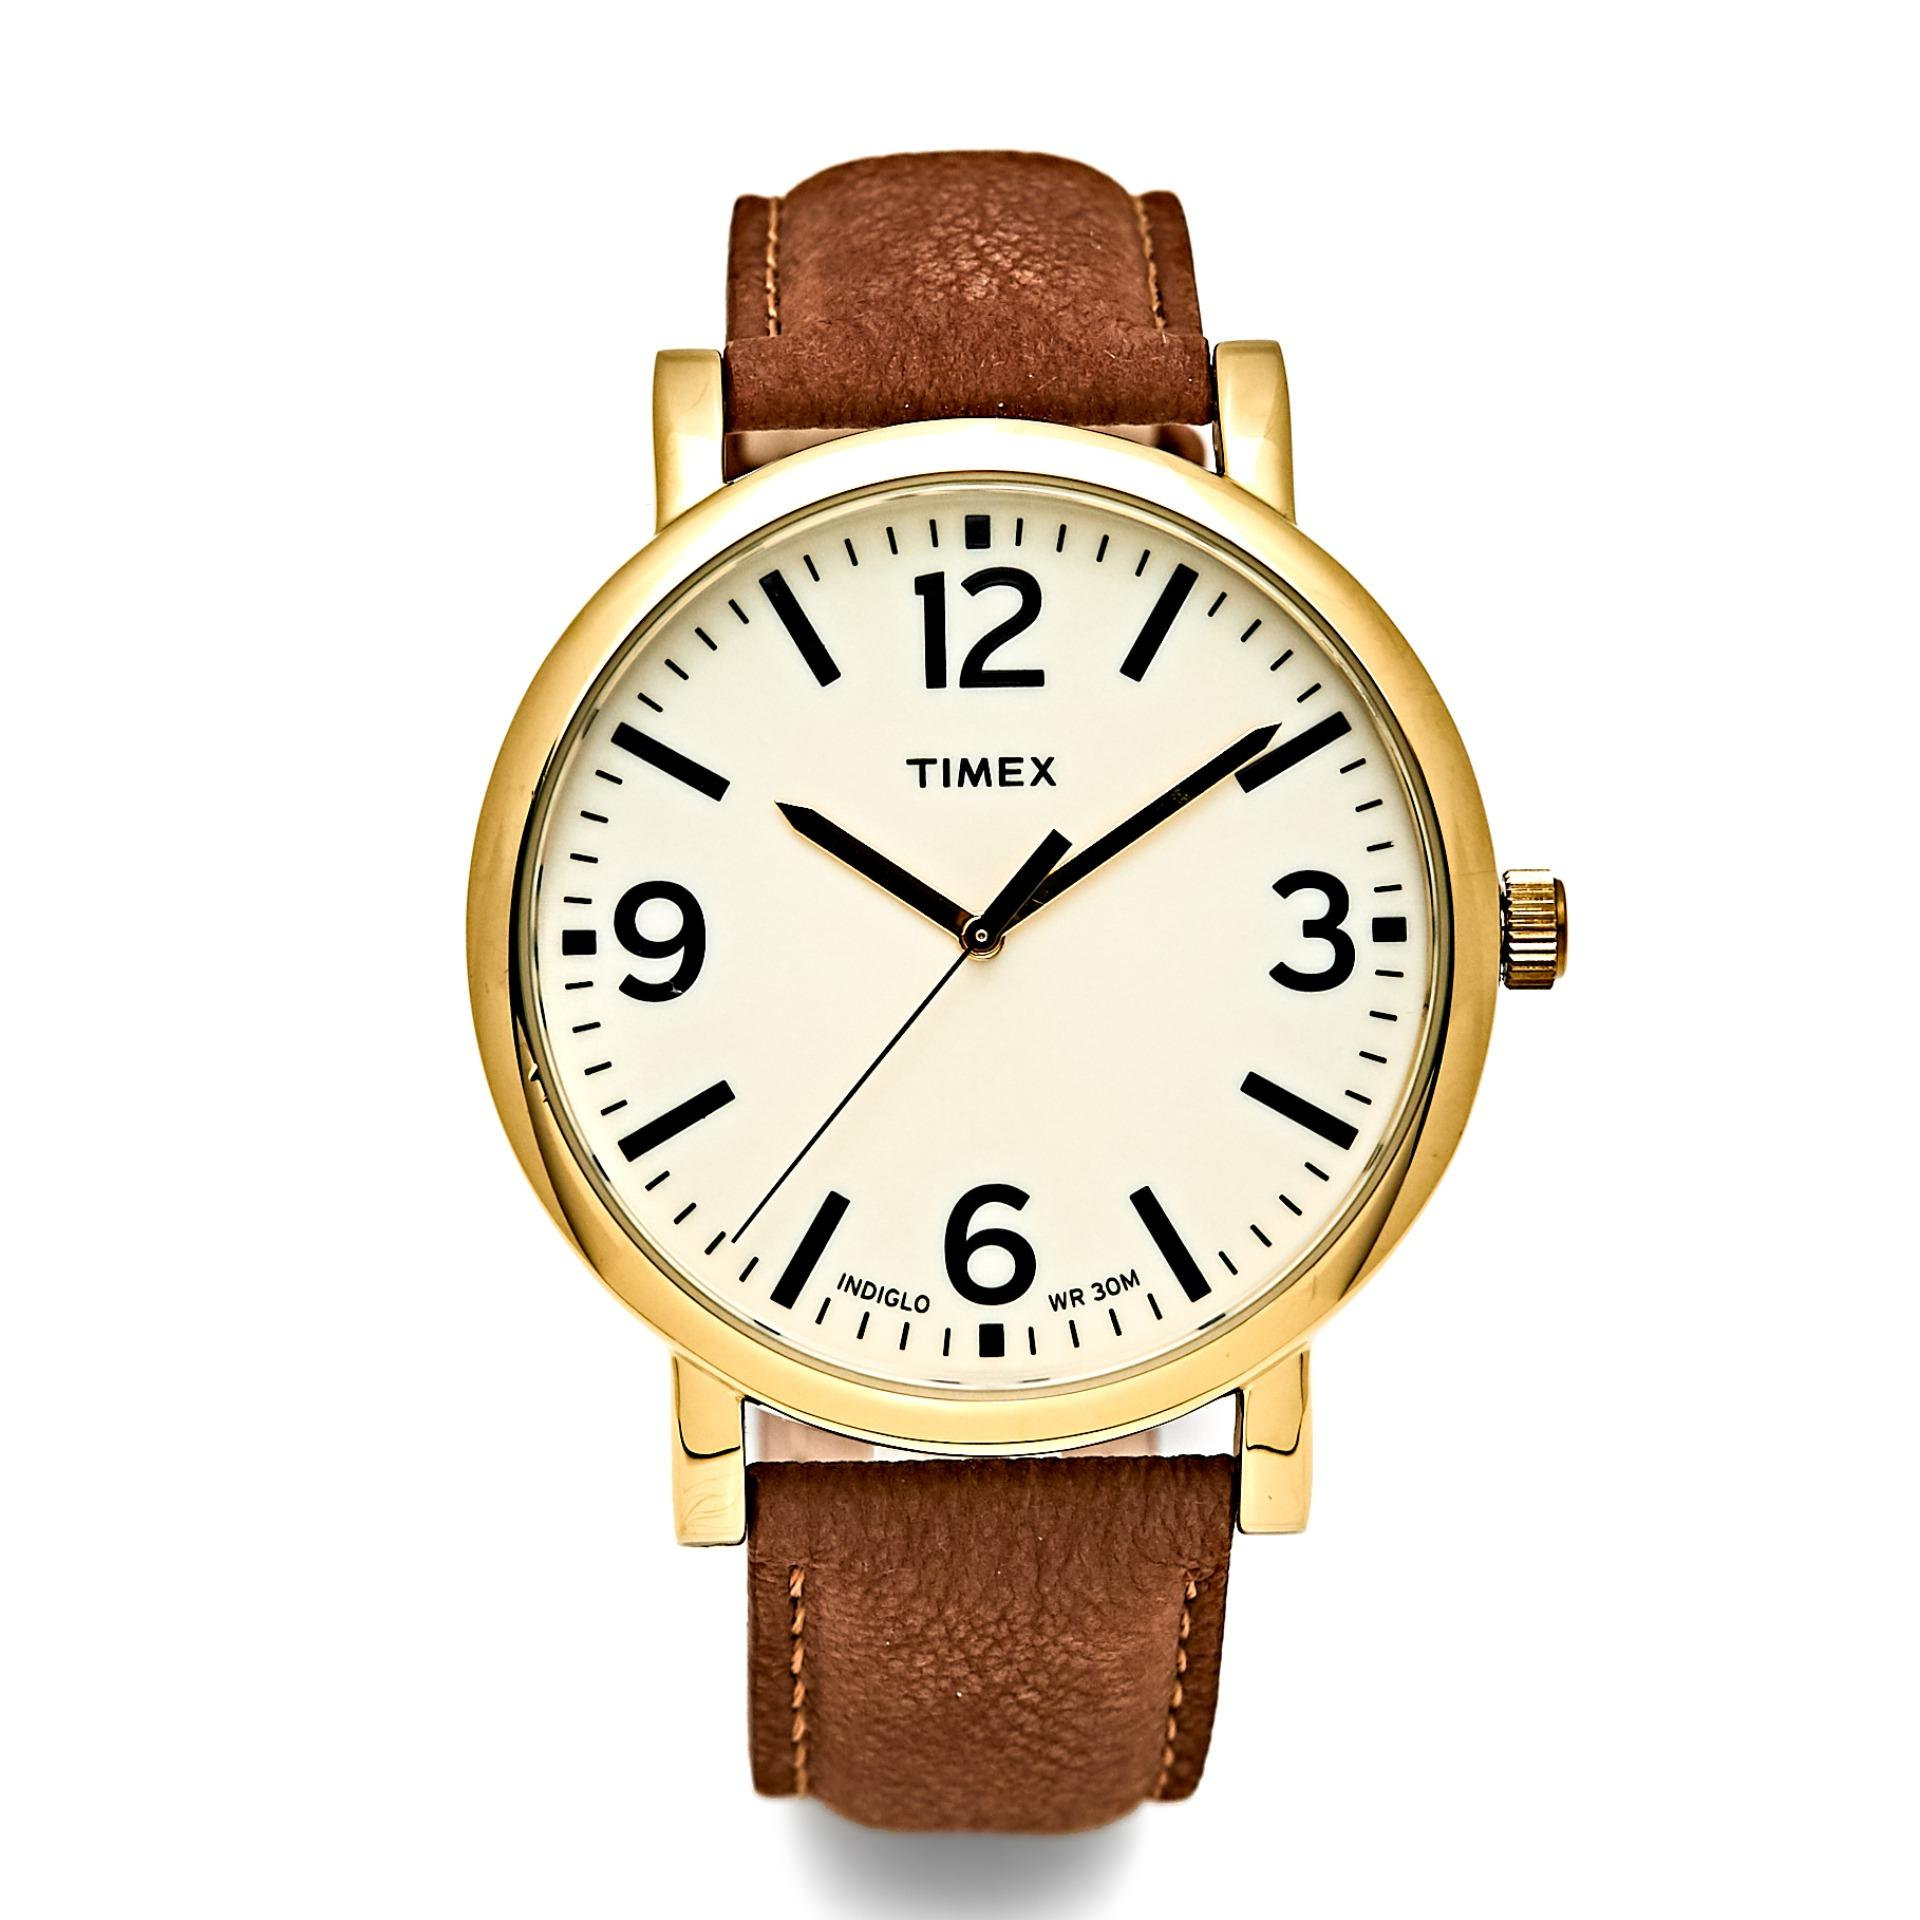 821a014c79e5 Timex Philippines  Timex price list - Timex Watches for Men   Women ...